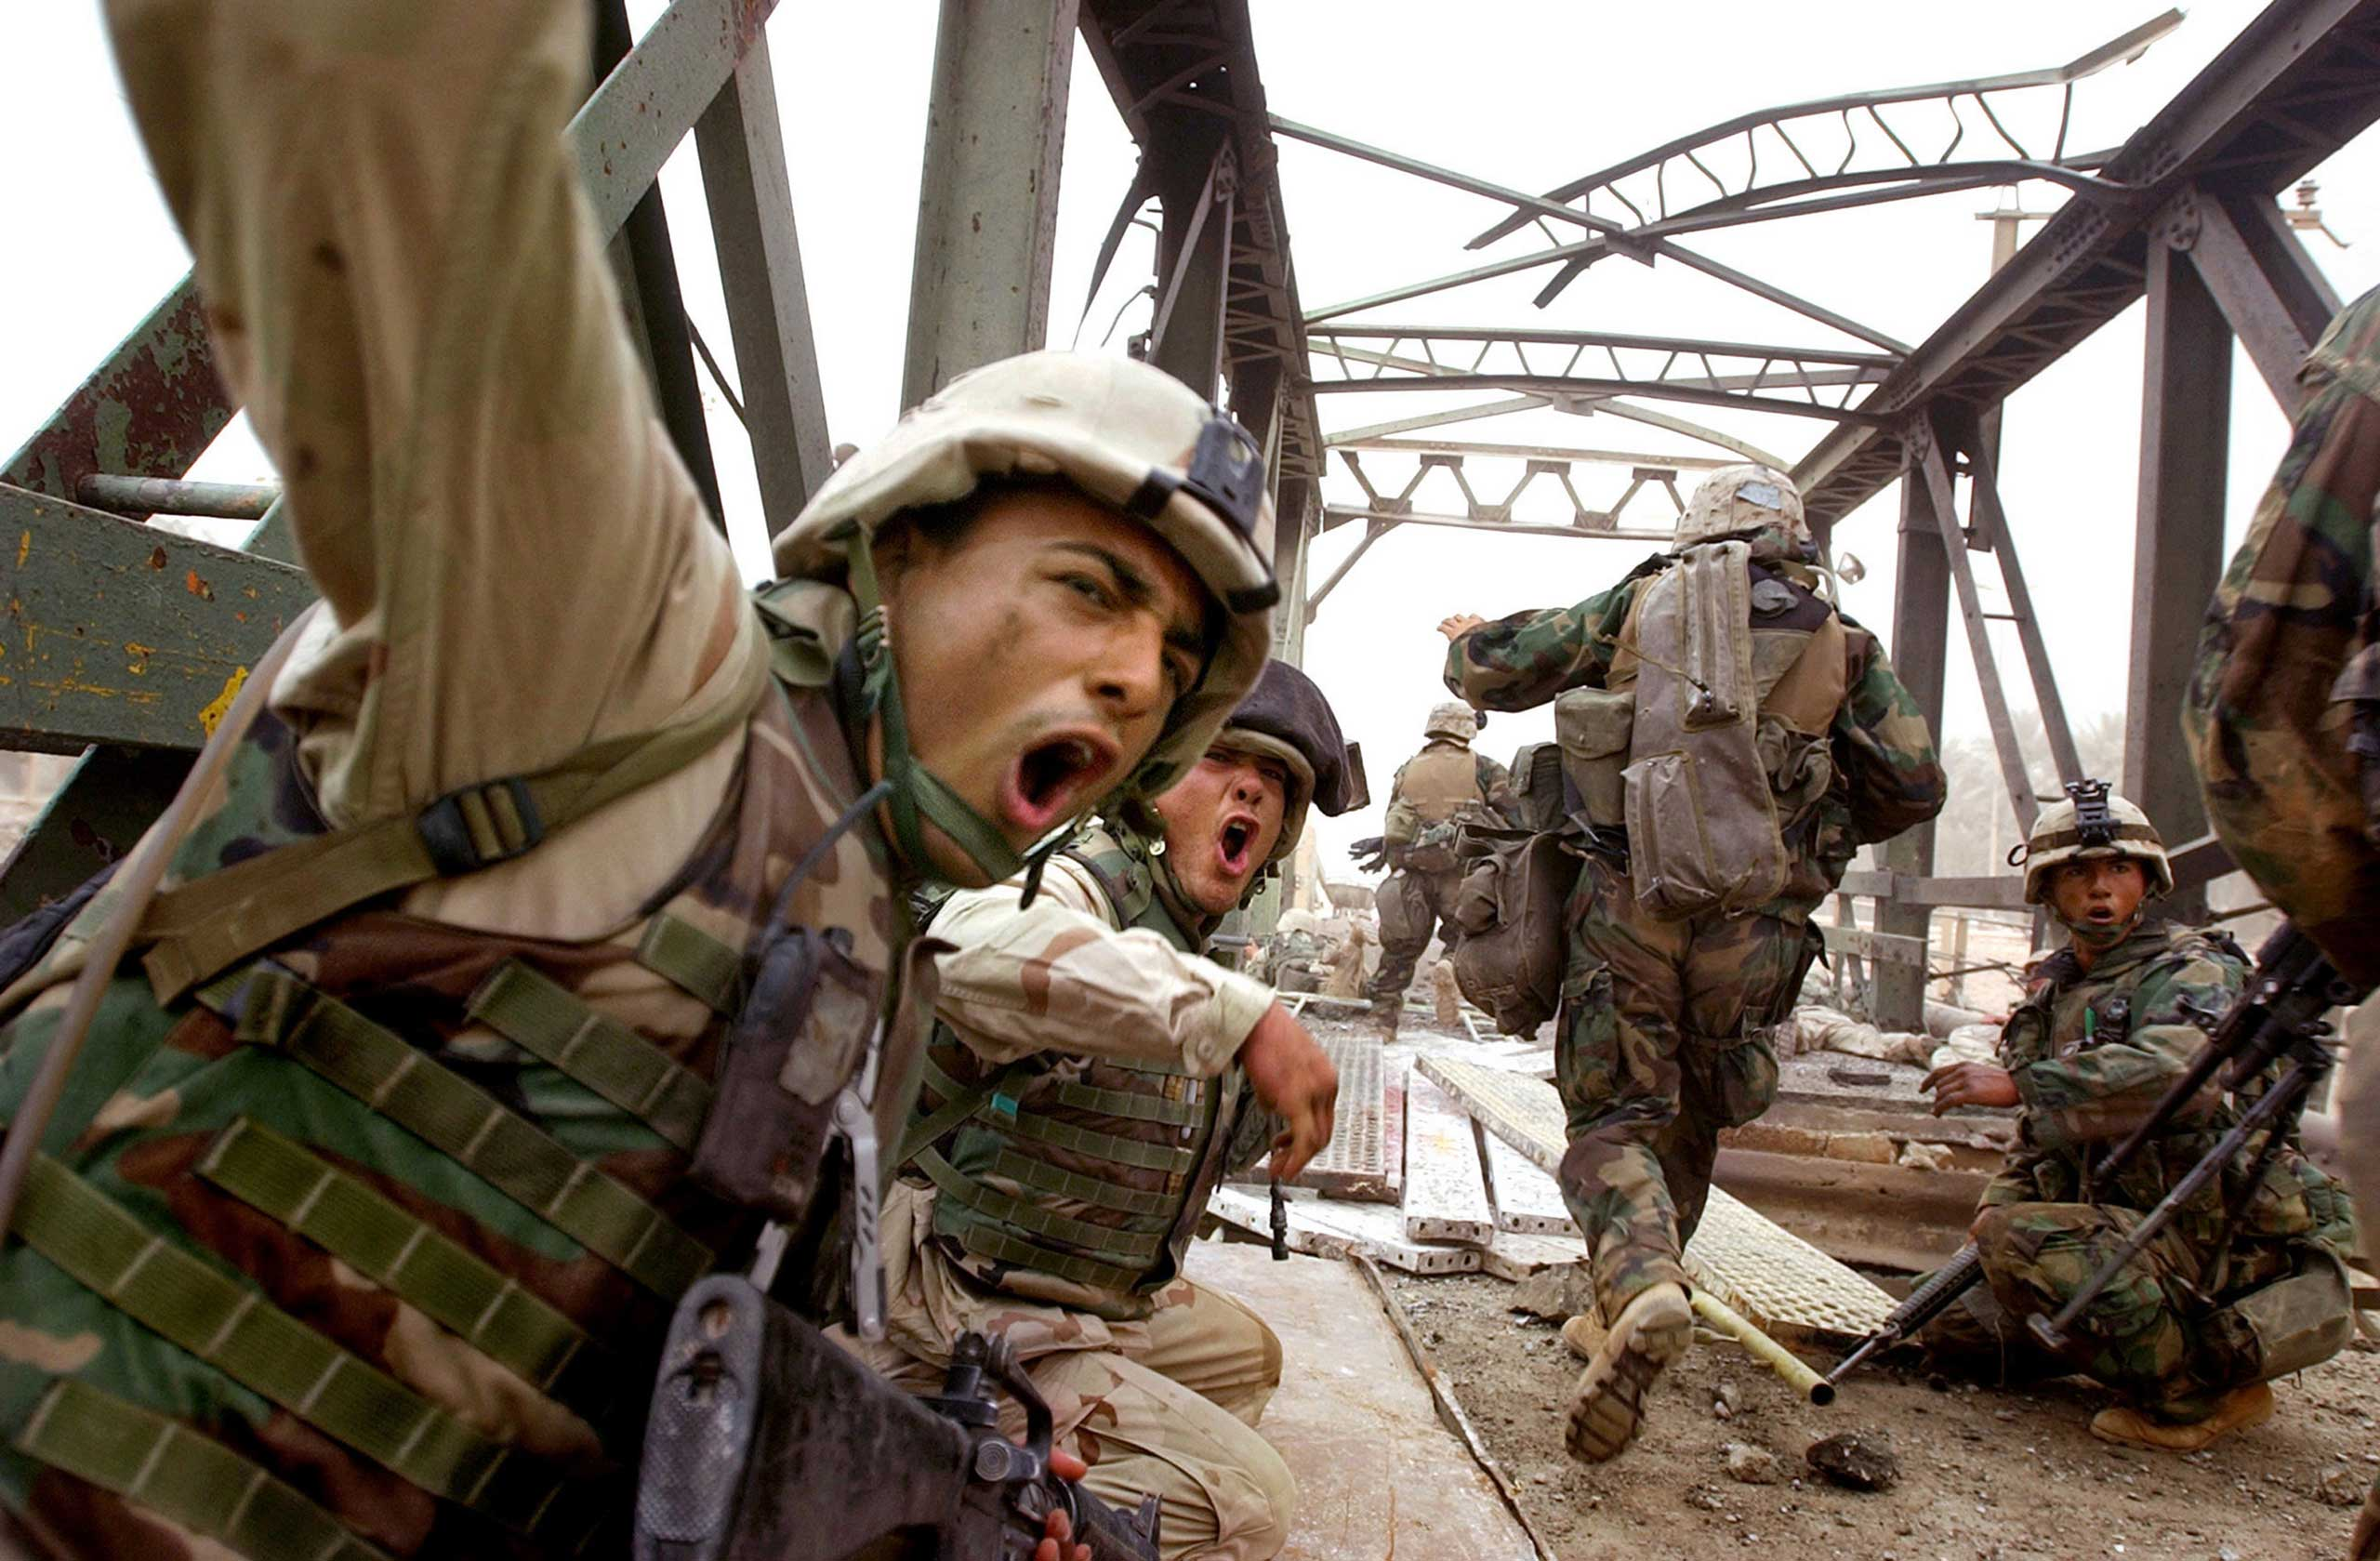 <b>Kuni Takahashi, April 7, 2003                                   </b>                                   The Iraqi army partially destroyed the bridge, which connected a suburb of Baghdad with the city center in an attempt to stop U.S. troops from advancing. The U.S. Marines decided to push ahead and sent engineers first. They laid iron plates down to patch holes on the bridge and began shouting at their fellow Marines to cross. There was heavy gunfire, but I wasn't sure which direction it was coming from. I just ducked my head down and followed the Marines. It was one of the first encounters with the Iraqi army and it gave me a sense that the fighting would intensify. Fortunately, my guess was wrong and the Marines reached the center in three days and took down Saddam Hussein's statue.